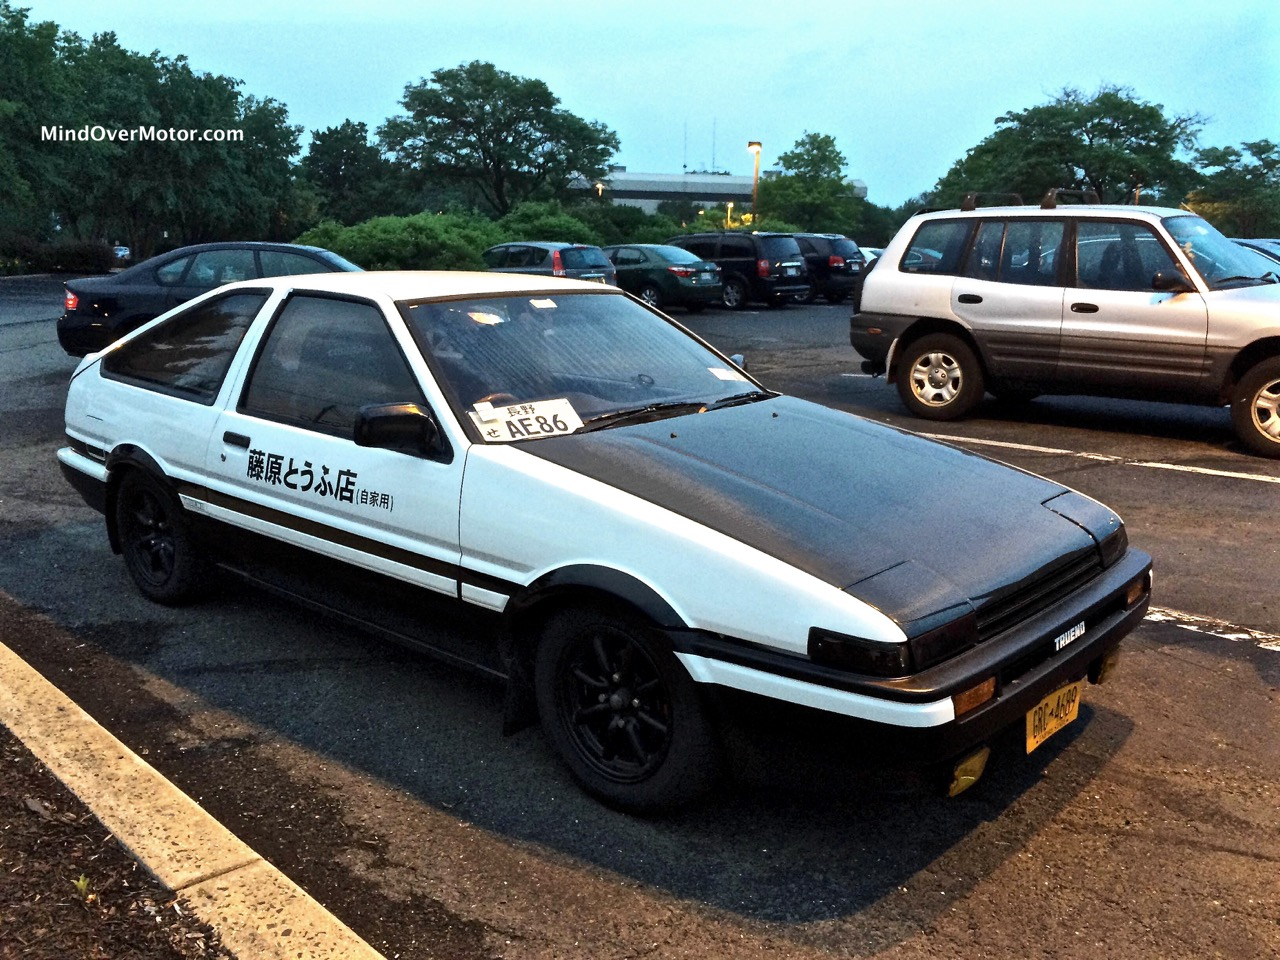 1985 toyota corolla ae86 sprinter trueno spotted in. Black Bedroom Furniture Sets. Home Design Ideas